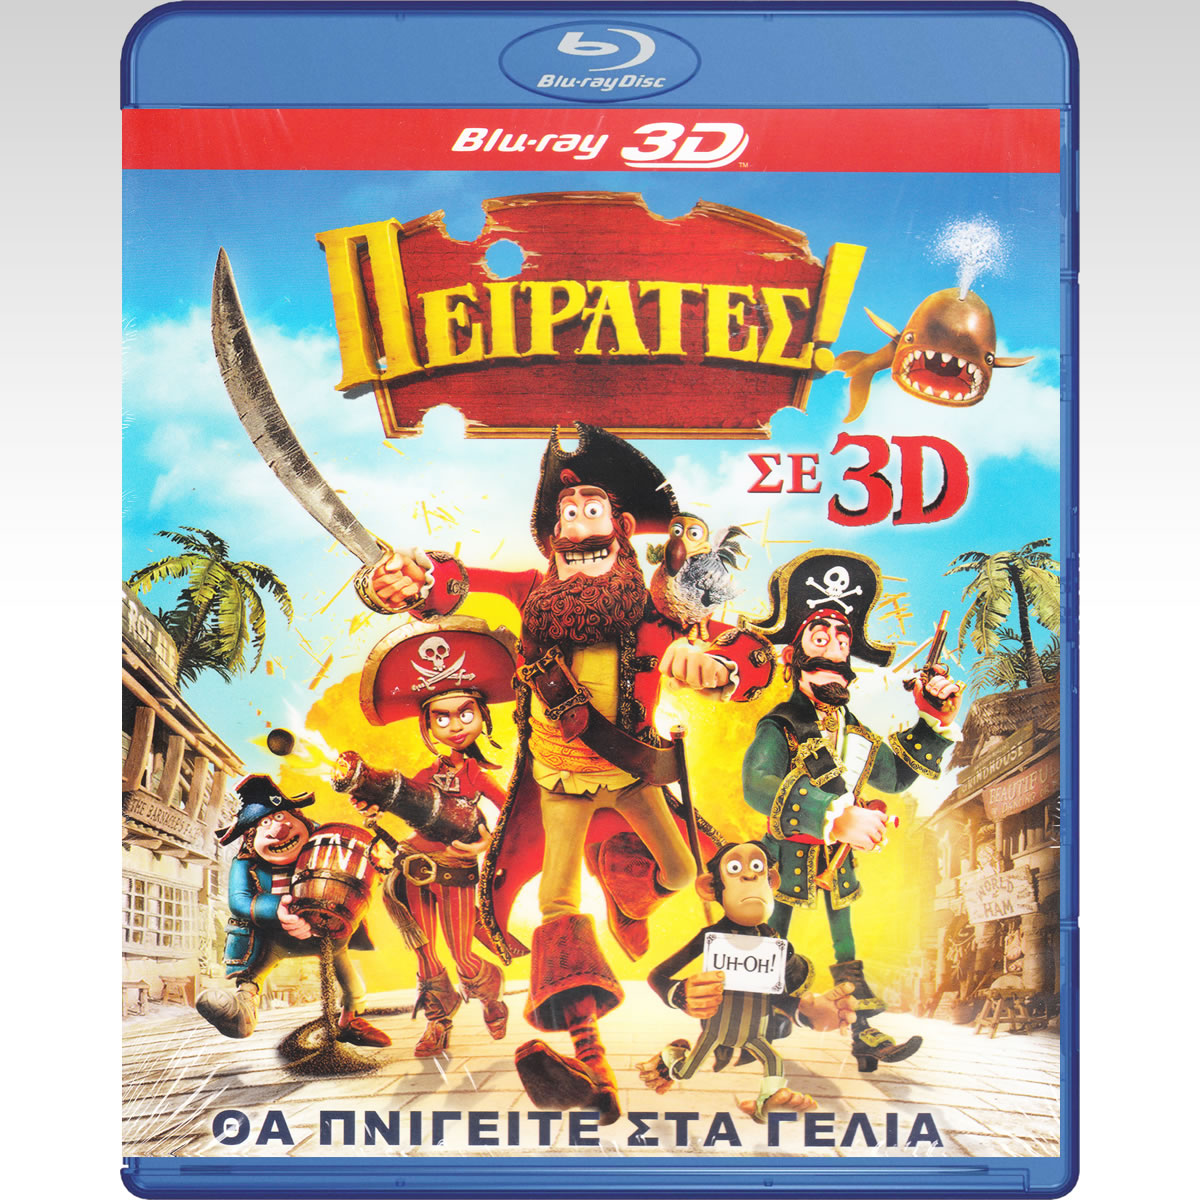 PIRATES! THE BAND OF THE MISFITS 3D - ΠΕΙΡΑΤΕΣ! 3D (BLU-RAY 3D/2D)